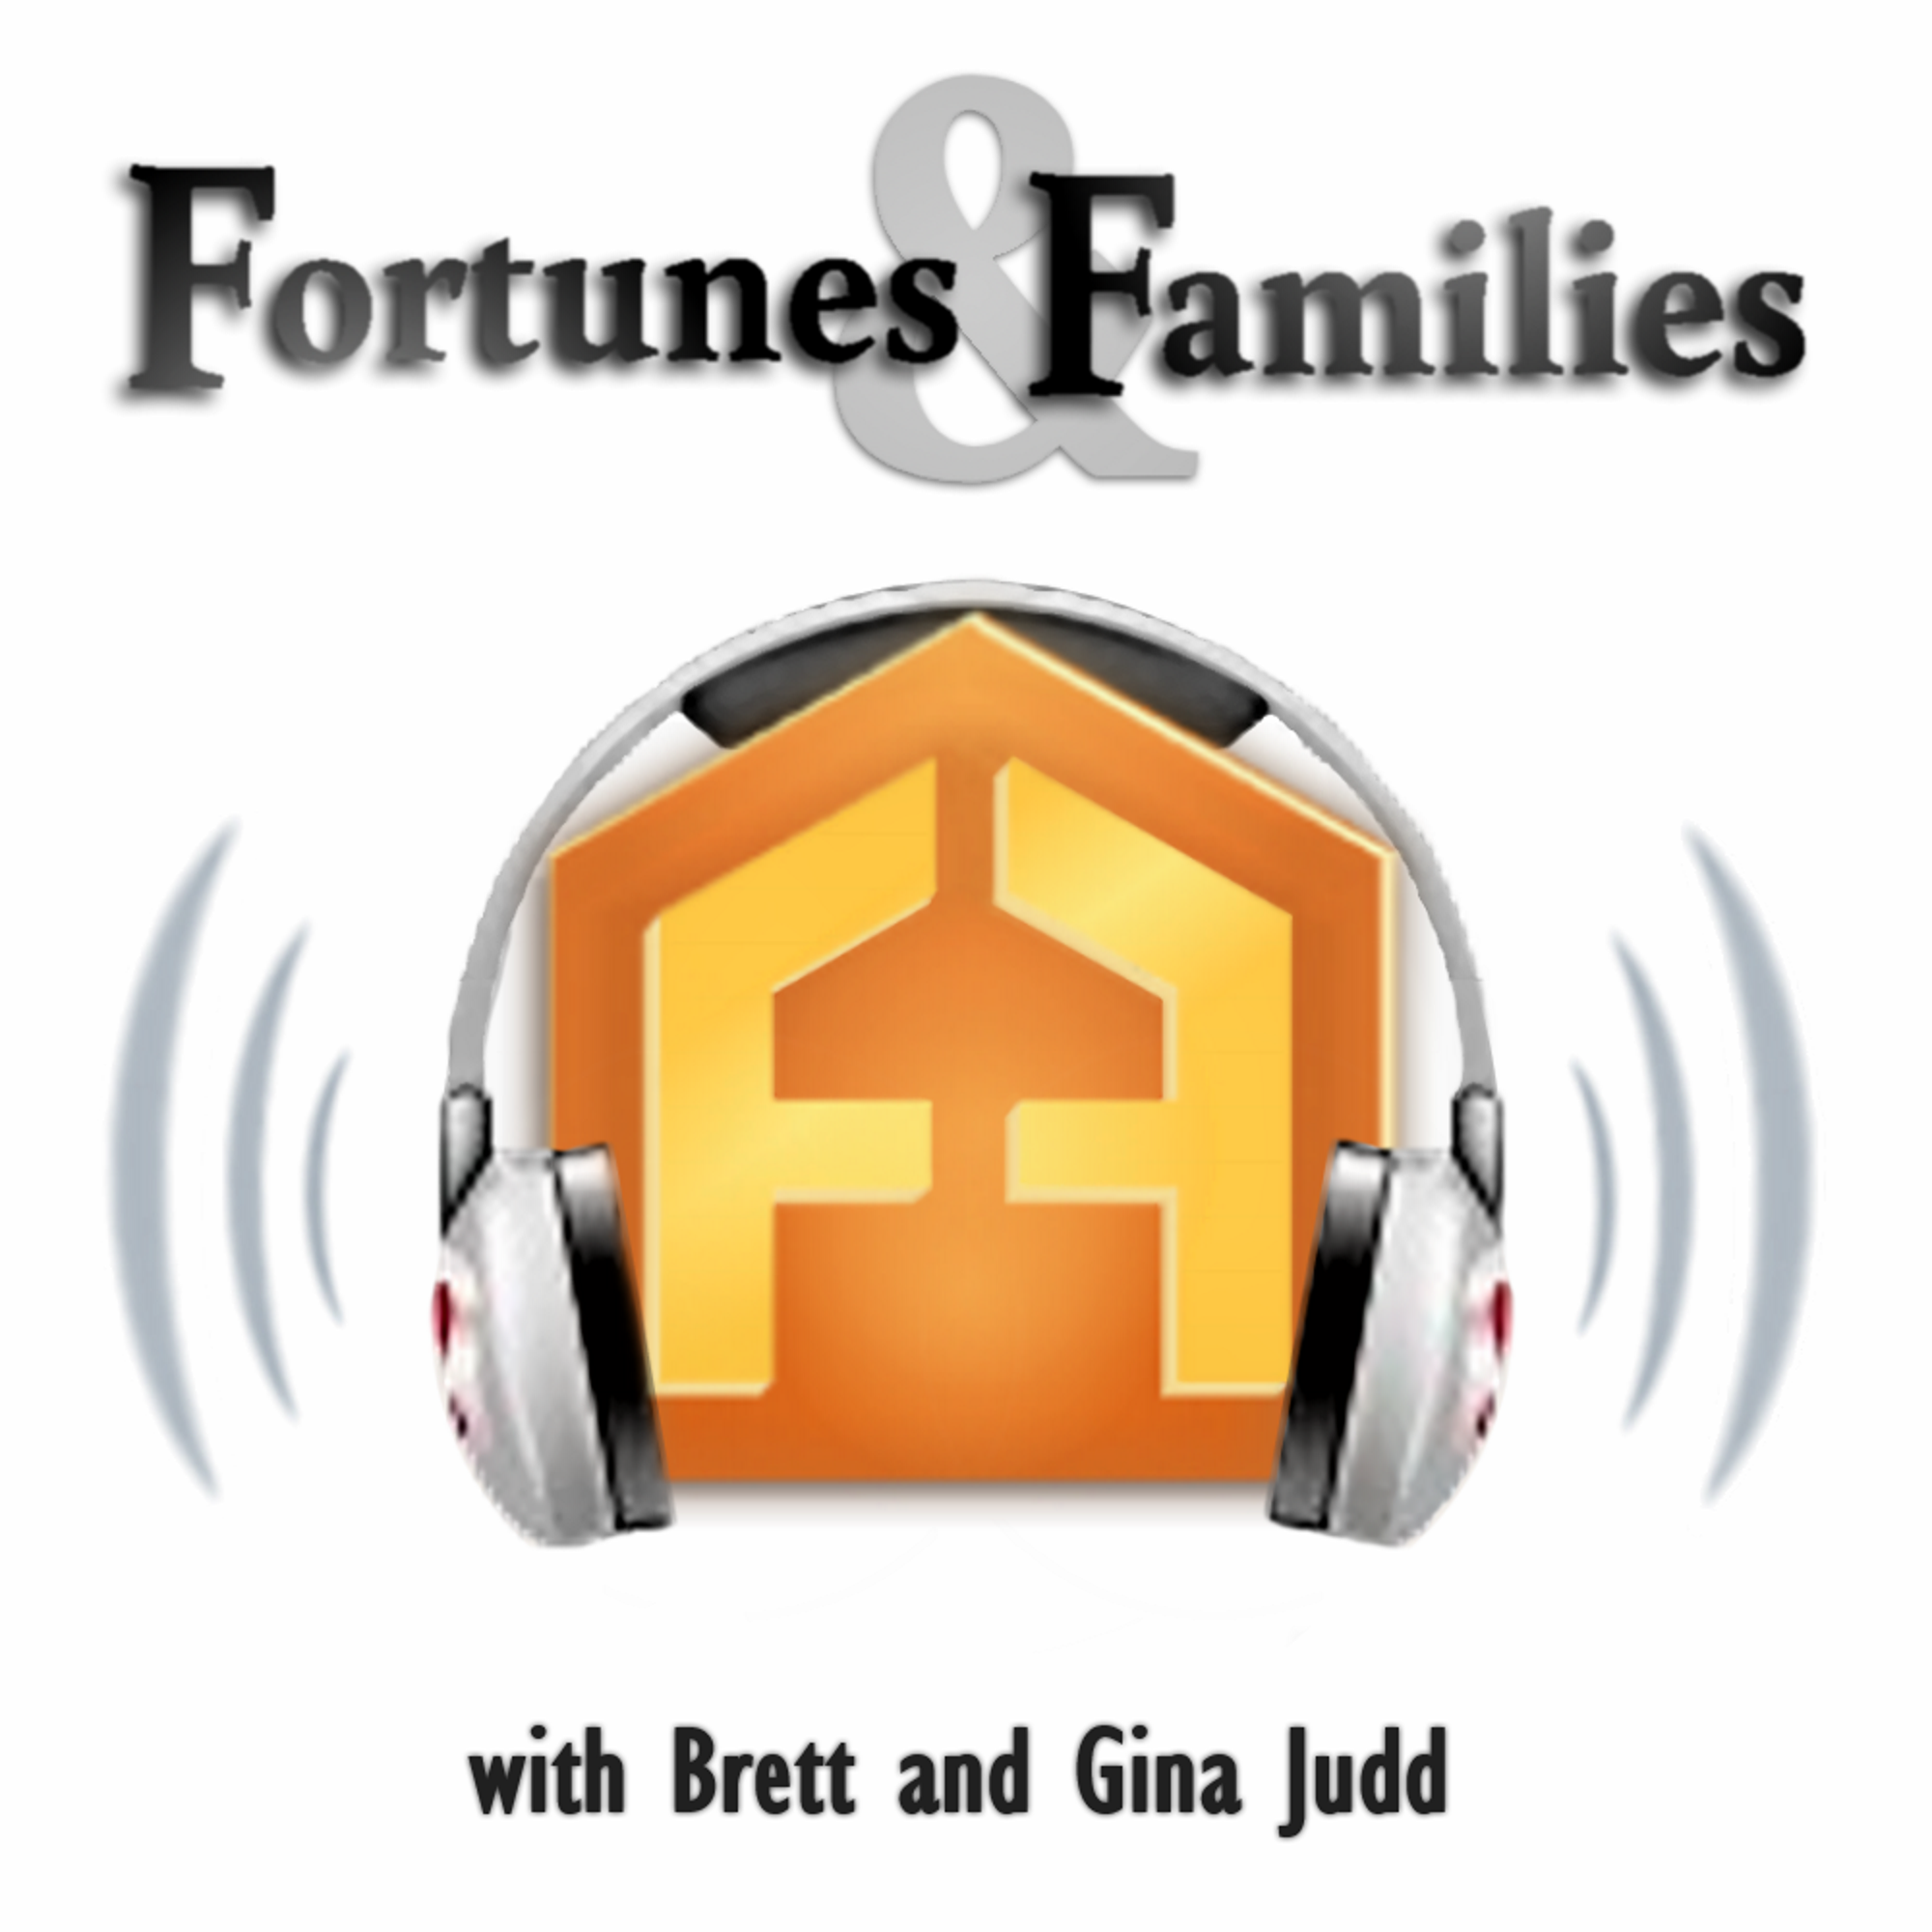 Fortunes and Families Podcast Network show art